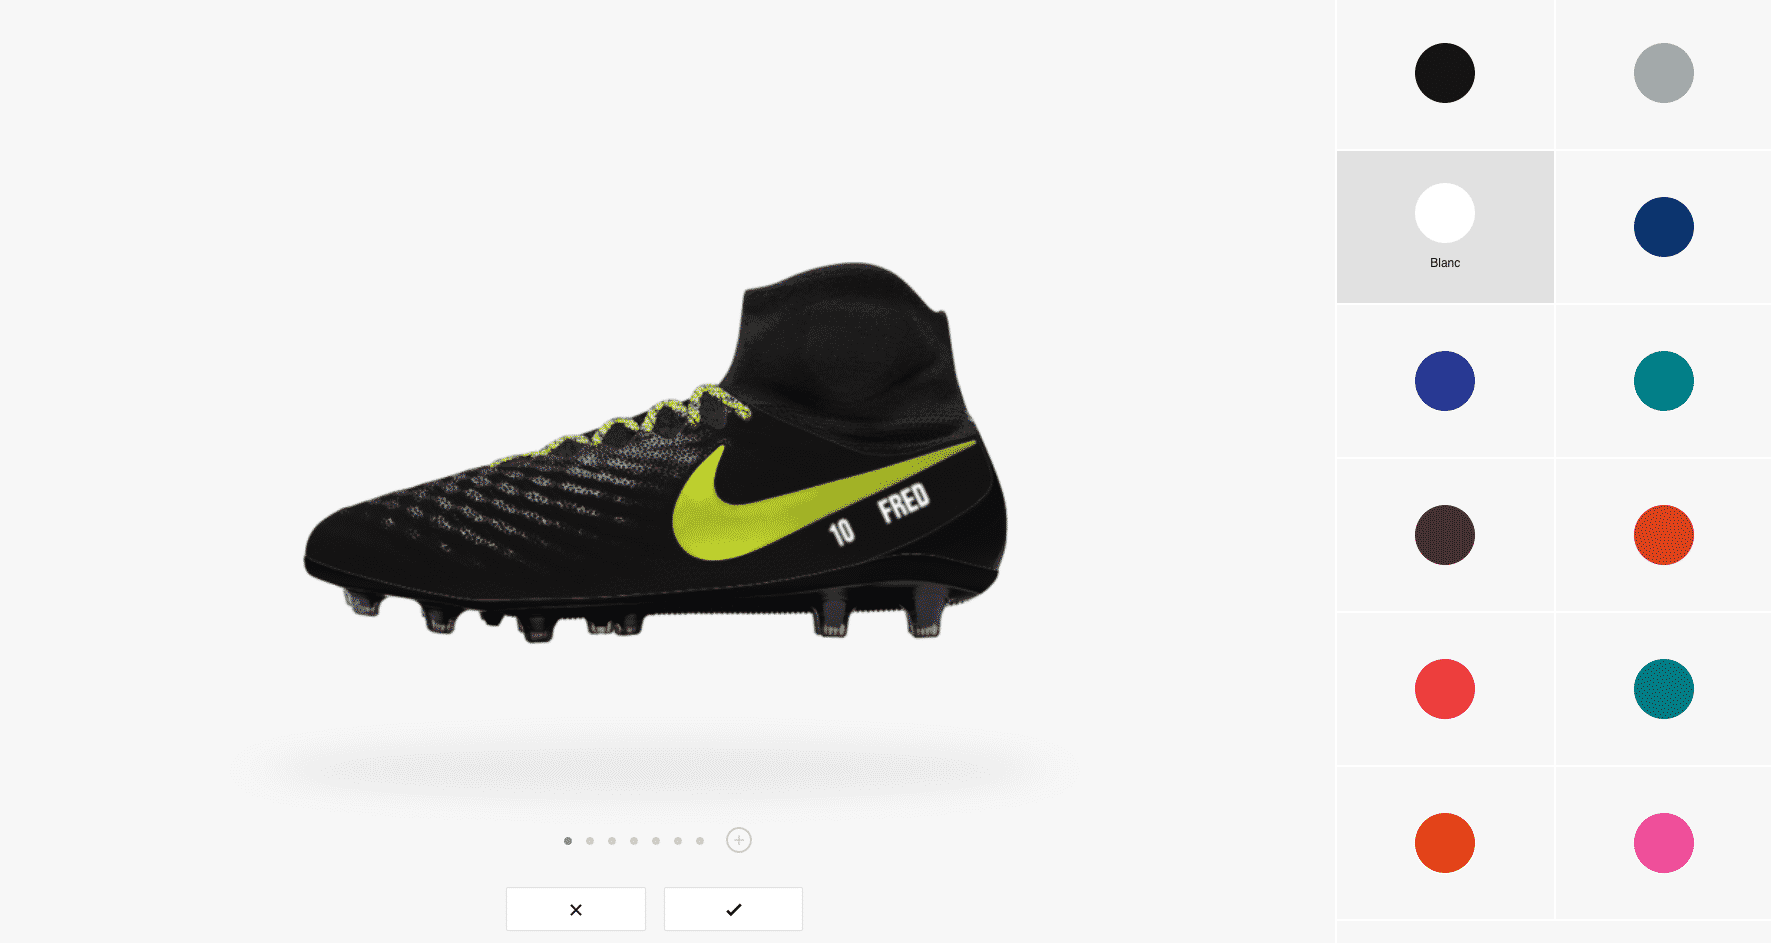 chaussure-football-nike-tech-craft-id-img7